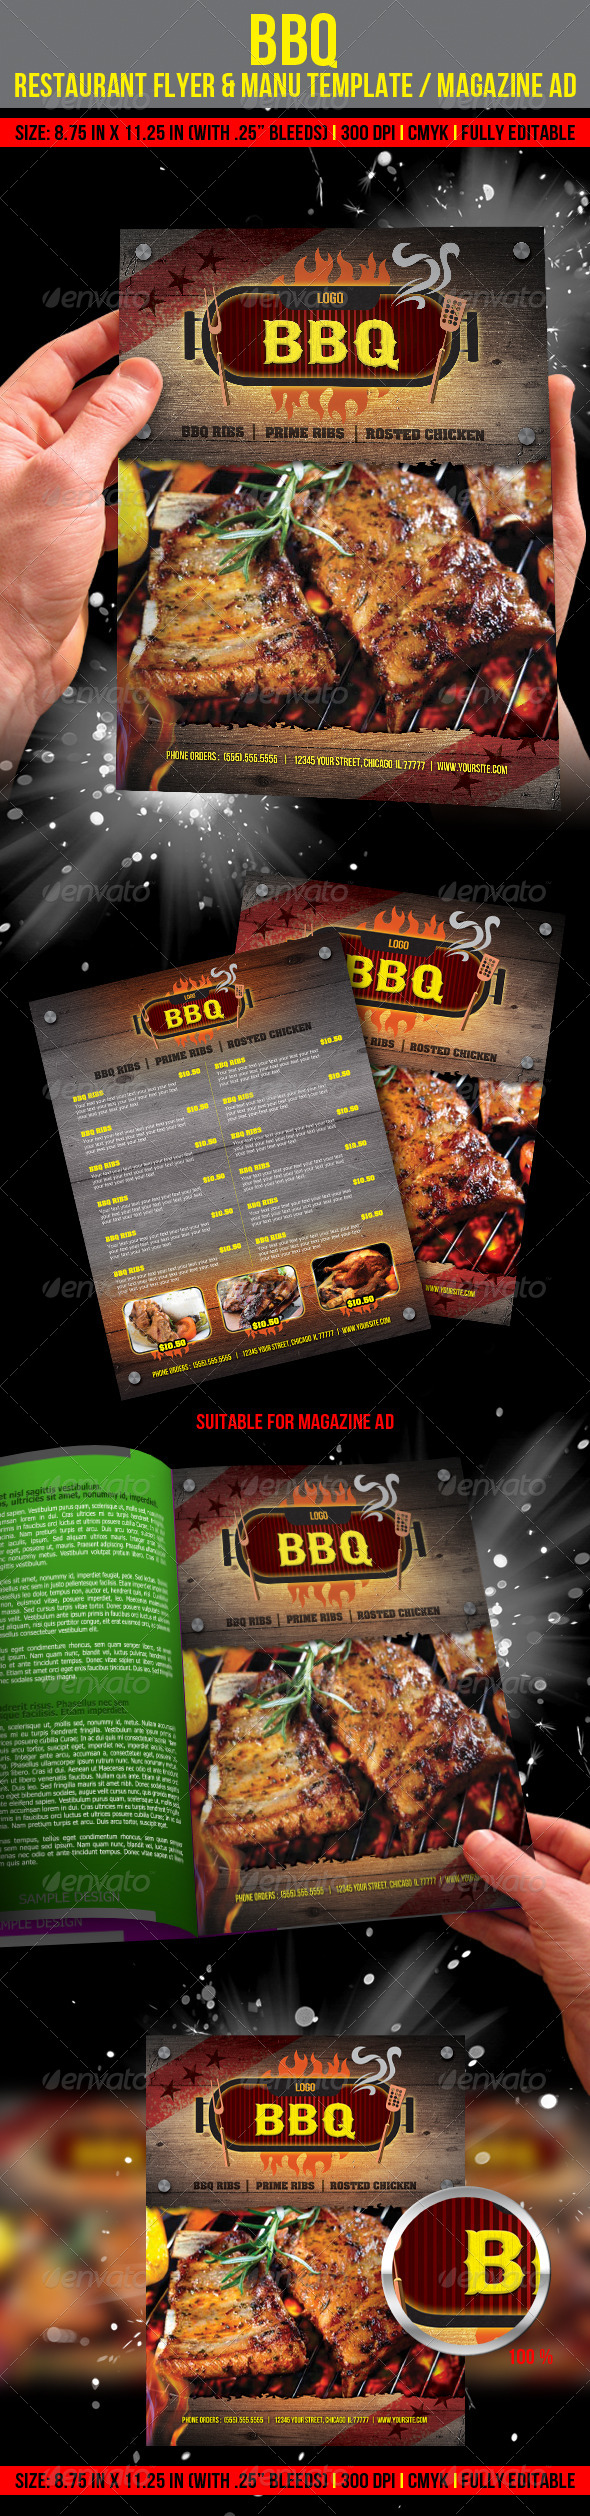 Barbecue Restaurant Flyer & Manu Template/ Magazin